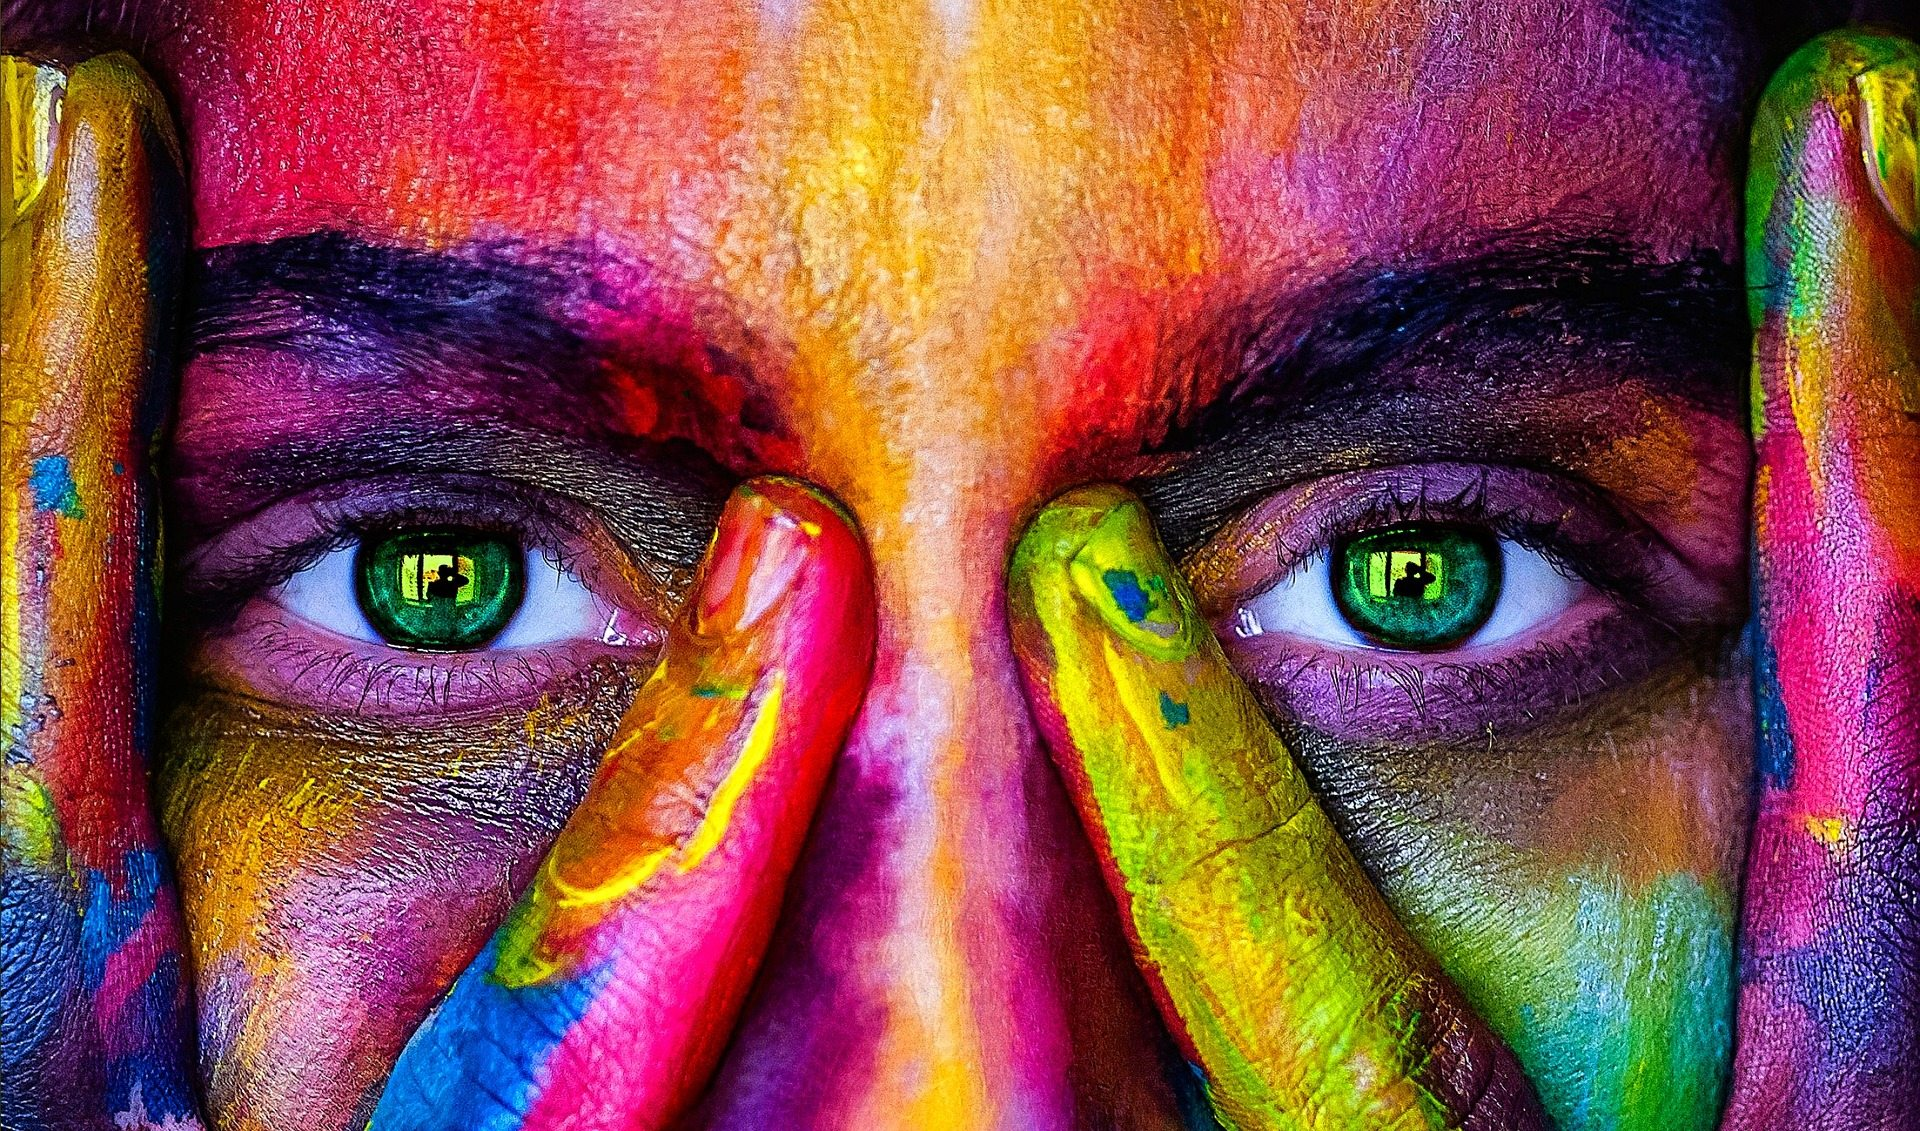 Image: Woman's face with brightly colored paint on it, indicating the new vision that this advanced technology will bring to peoples lives.